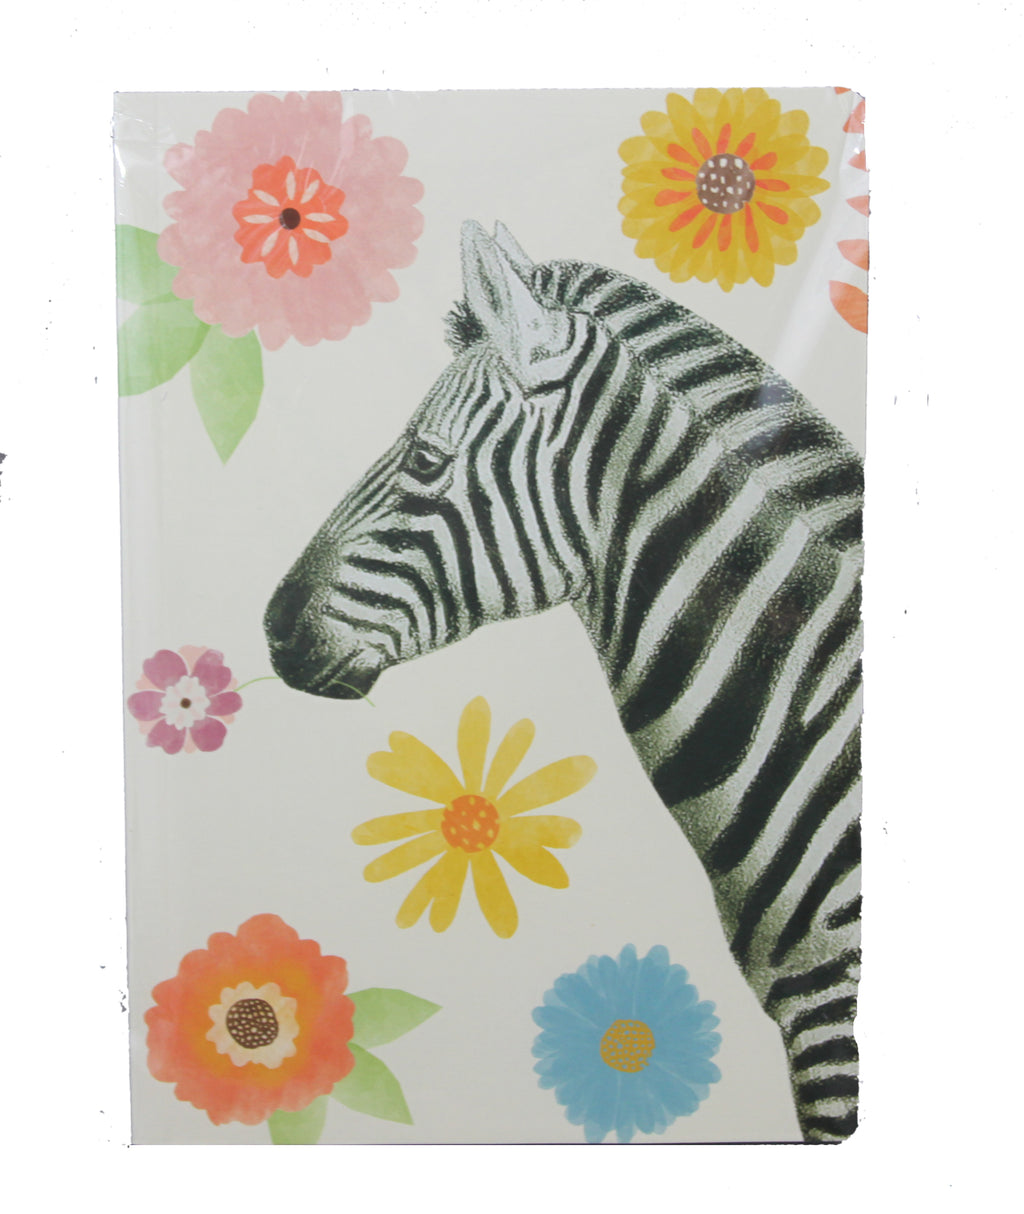 Floral Zebra Jungle Notebook - A5 Size - Blank Pages